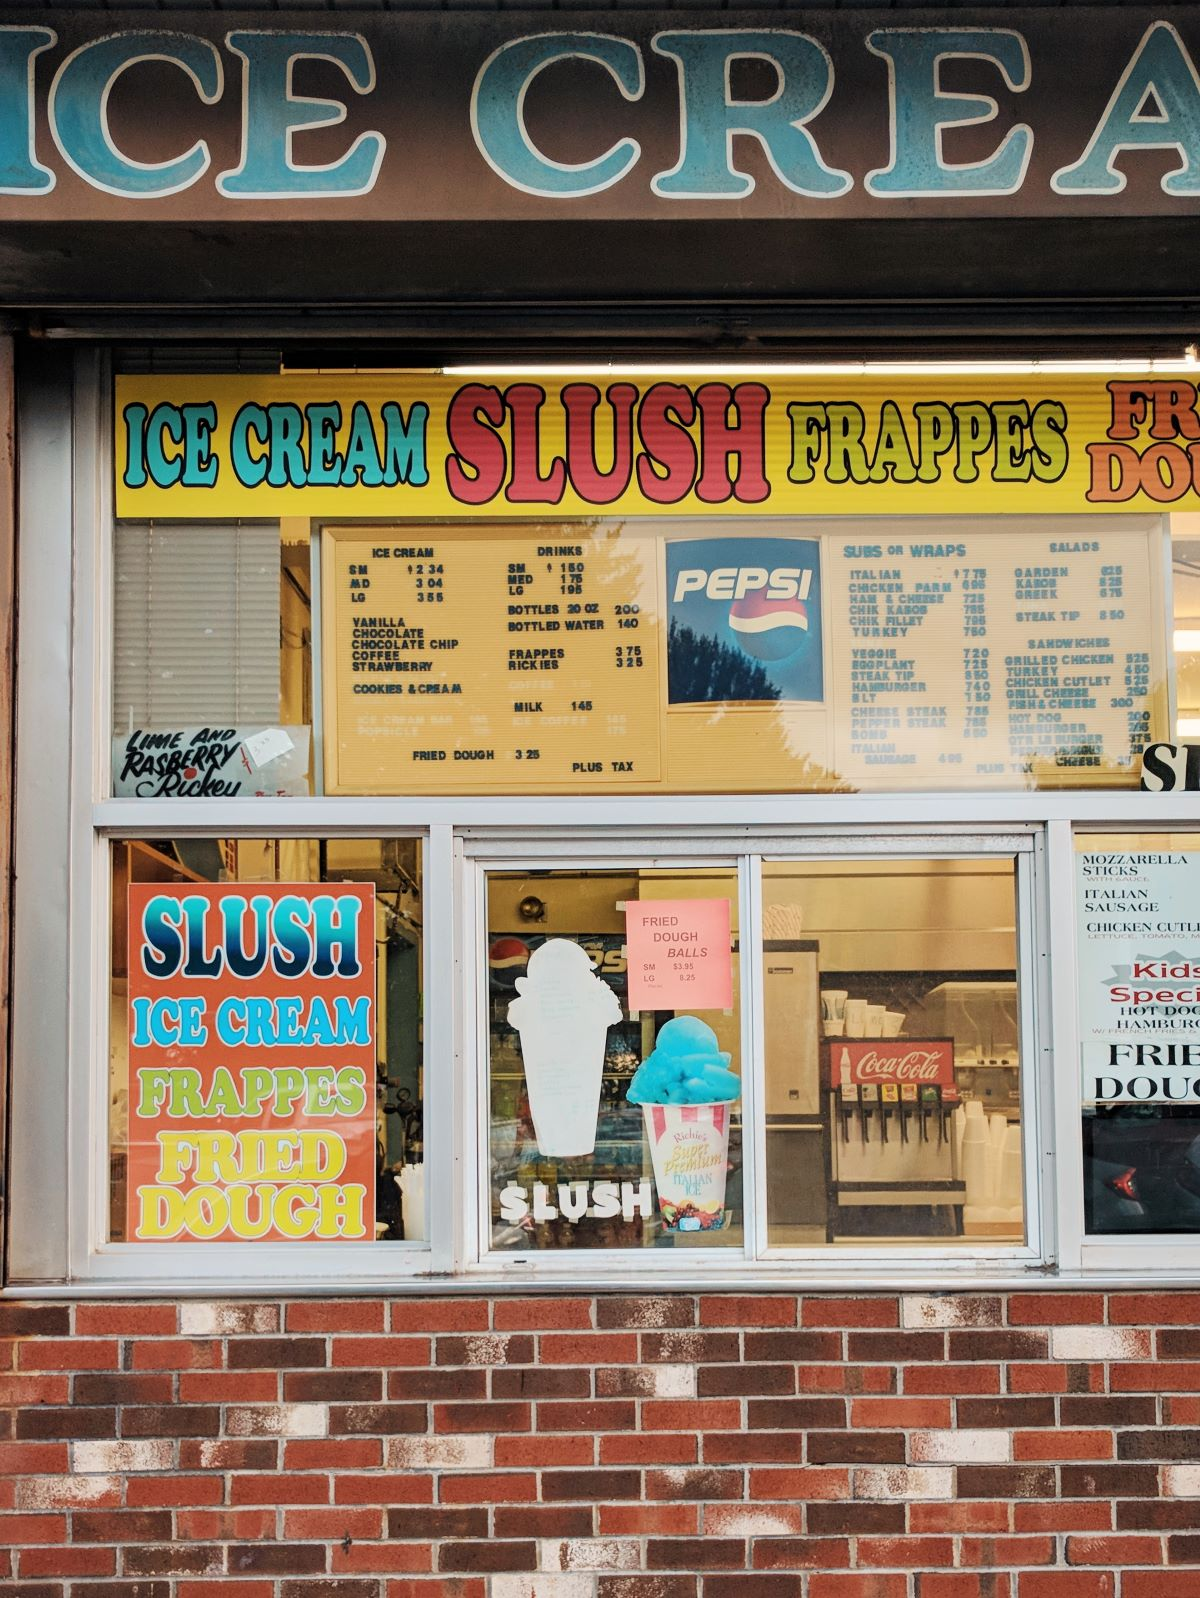 Fast food order window with ice cream, slushies, pizza, and more